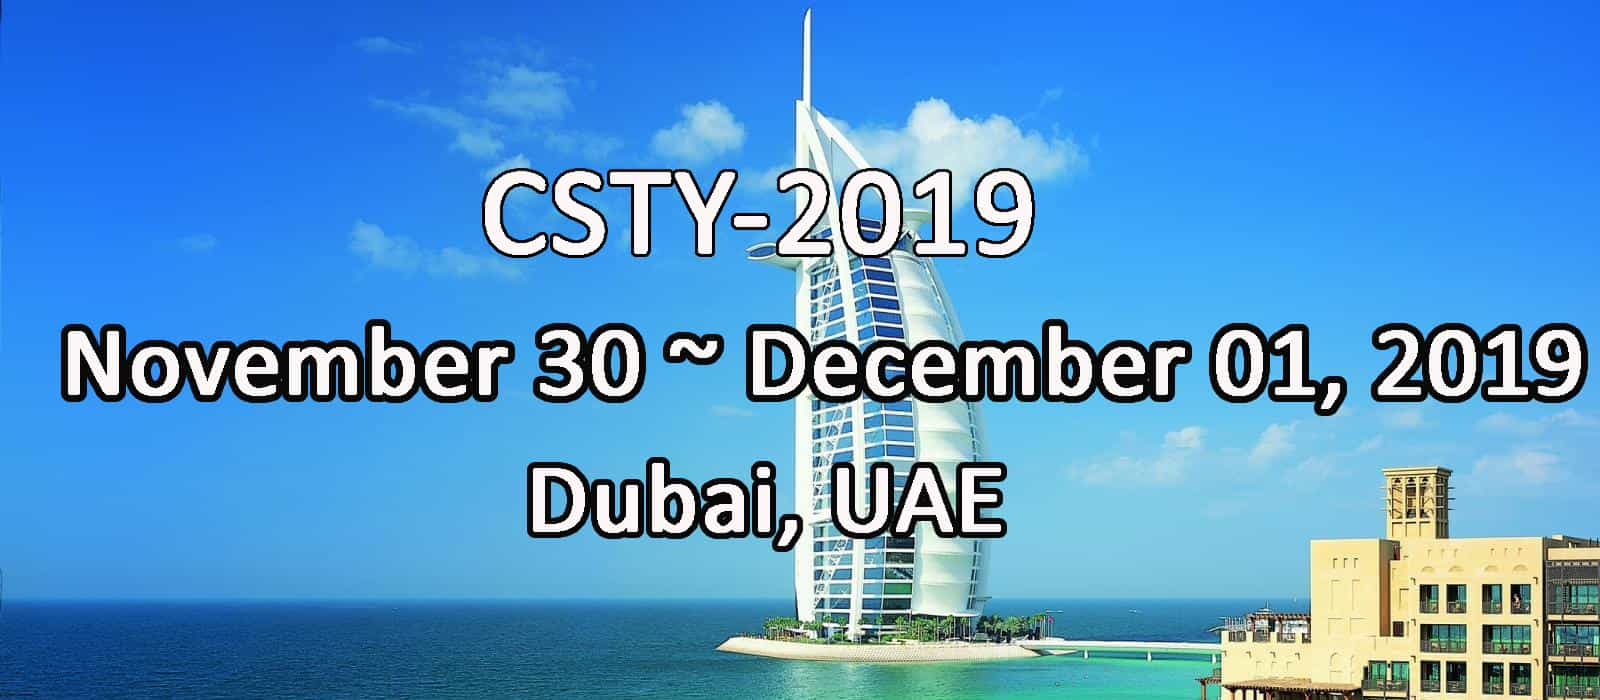 5th International Conference on Computer Science and Information Technology (CSTY 2019)